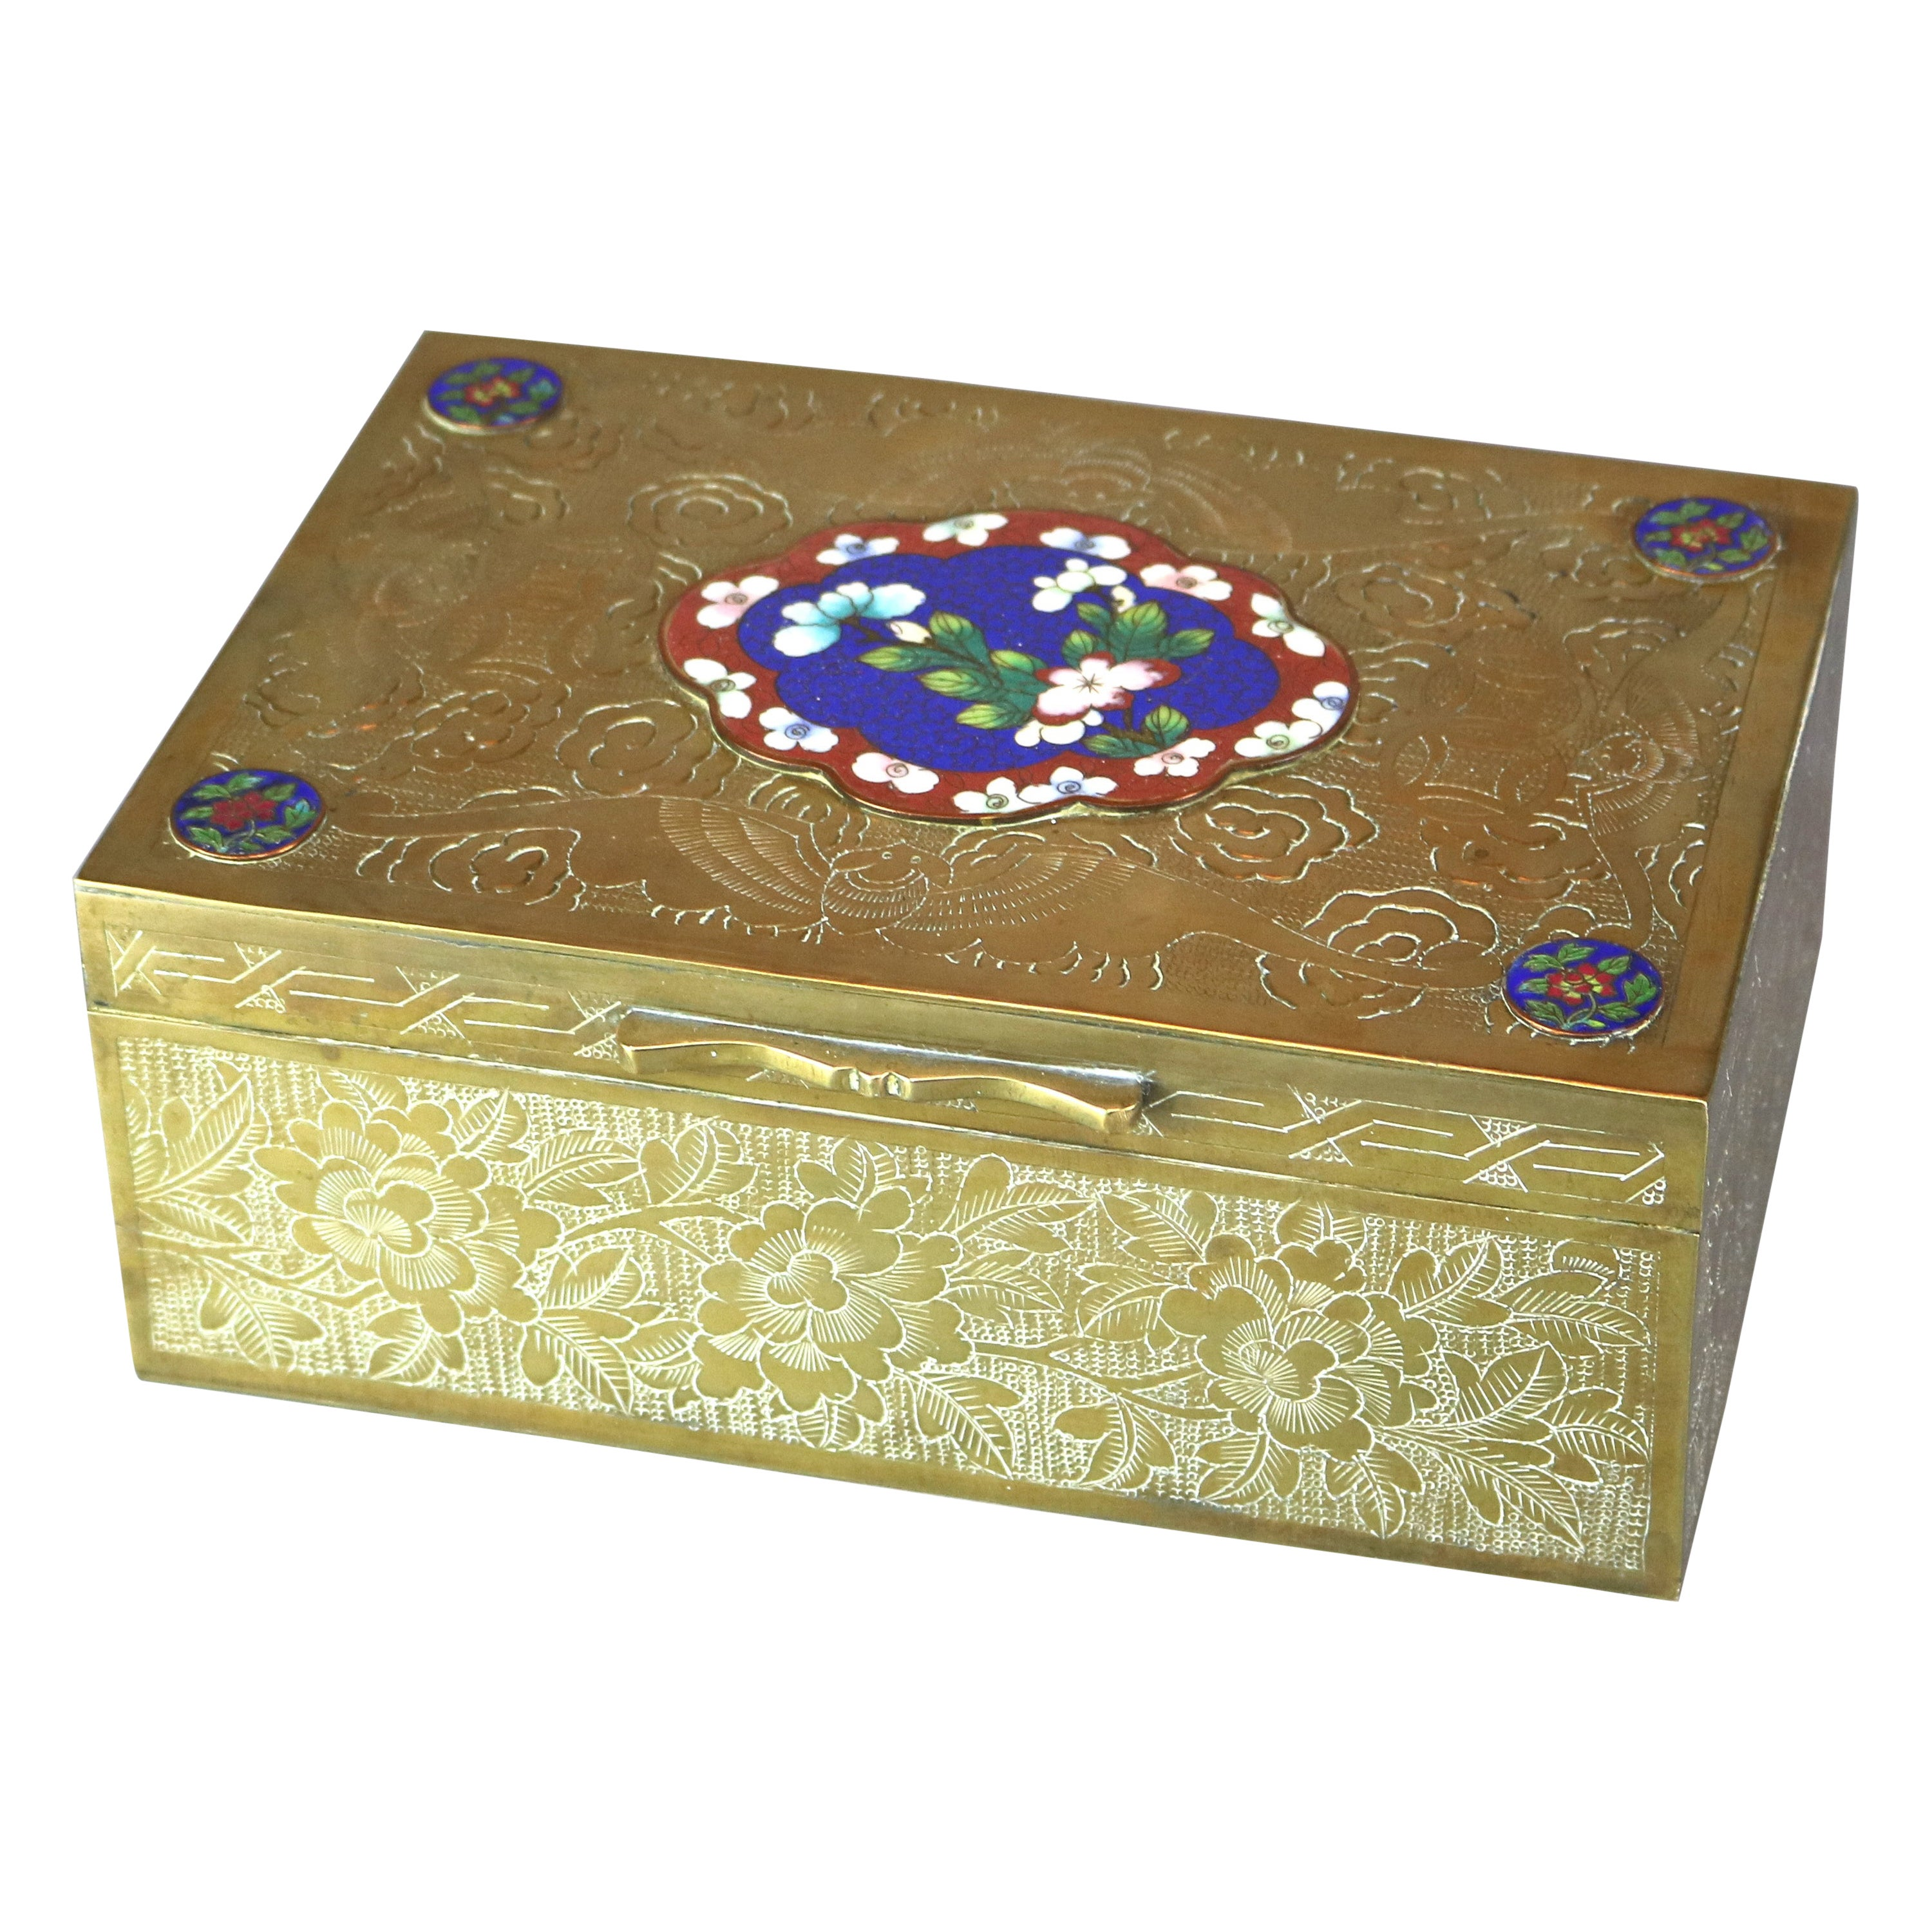 Antique Chinese Bronzed & Brass Box with Enameled Floral Cloisonné Panels 20th C